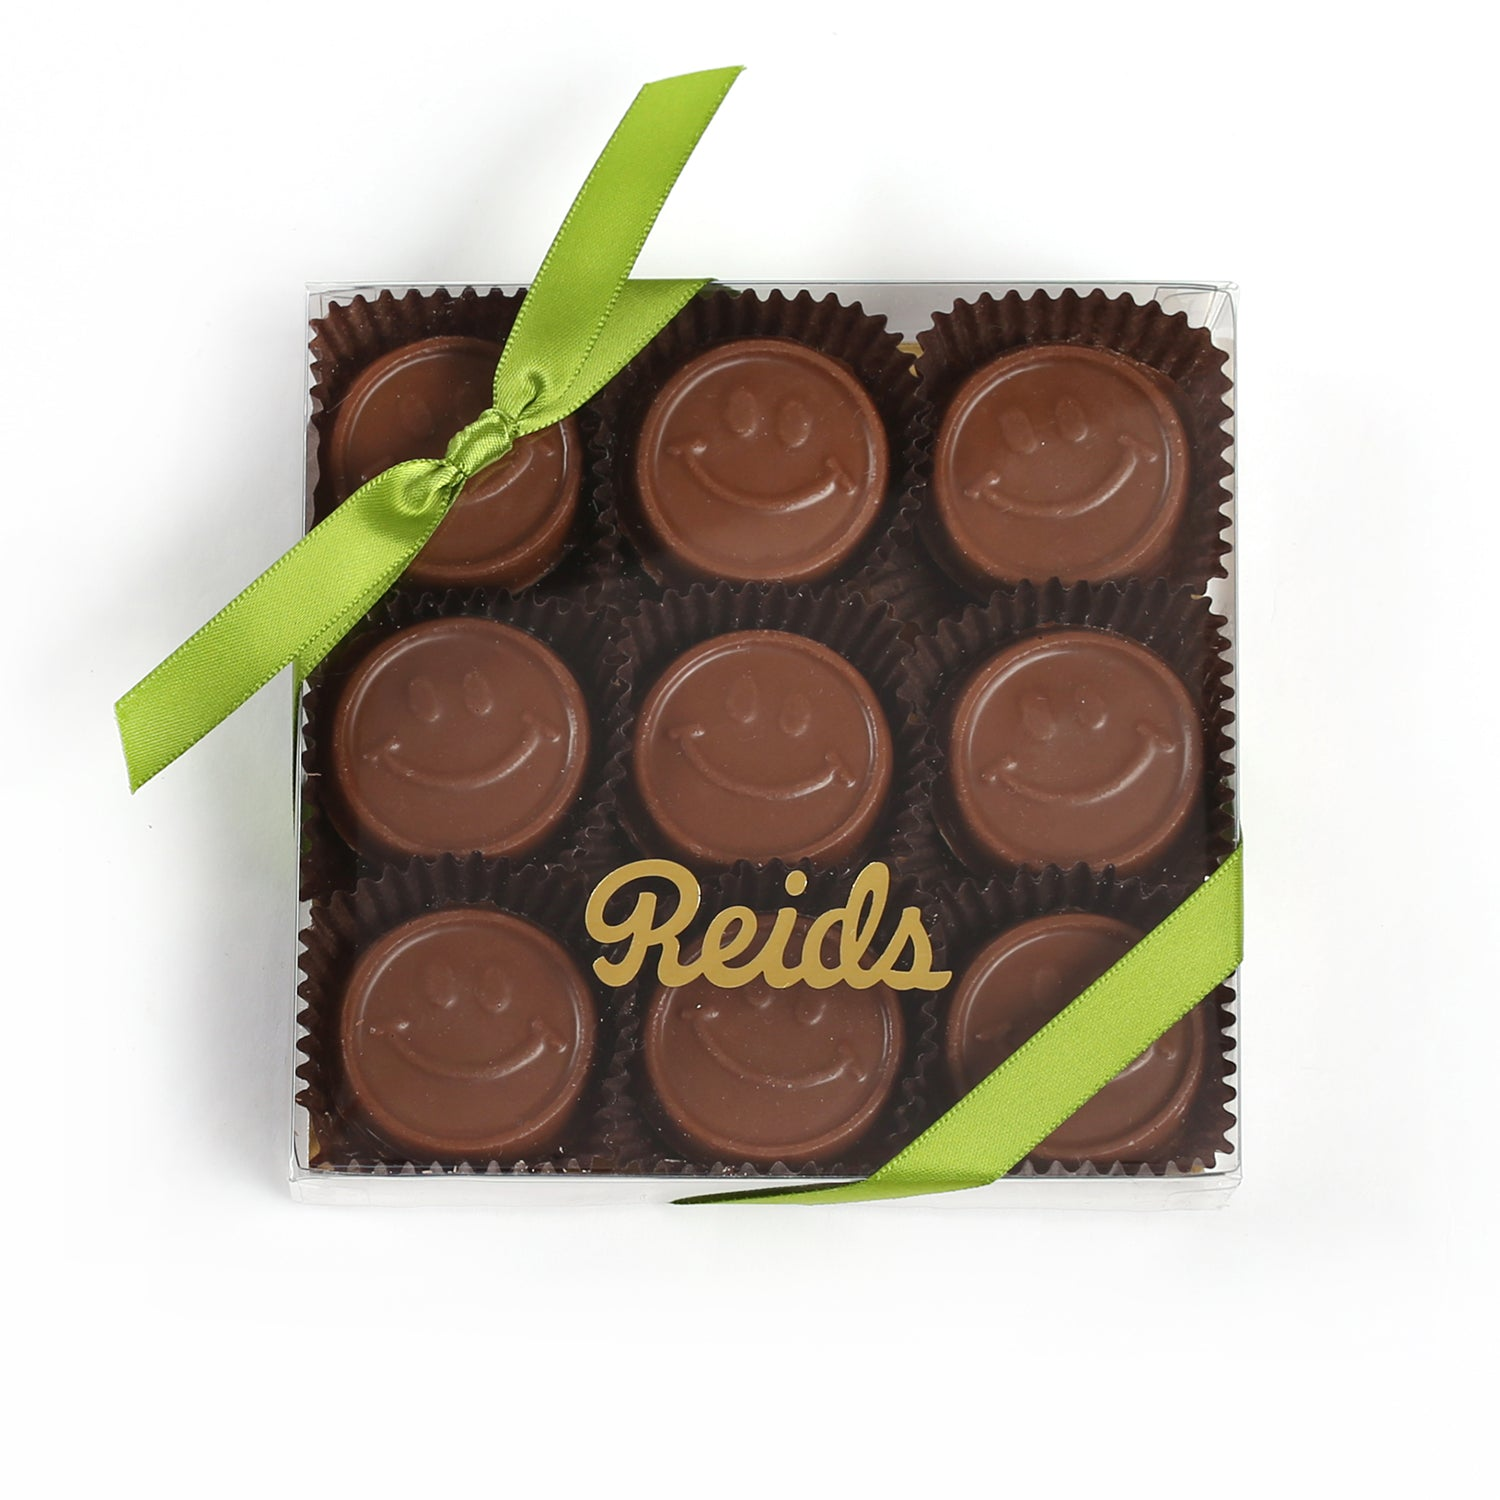 Product photo of smile chocolate bites box with green ribbon